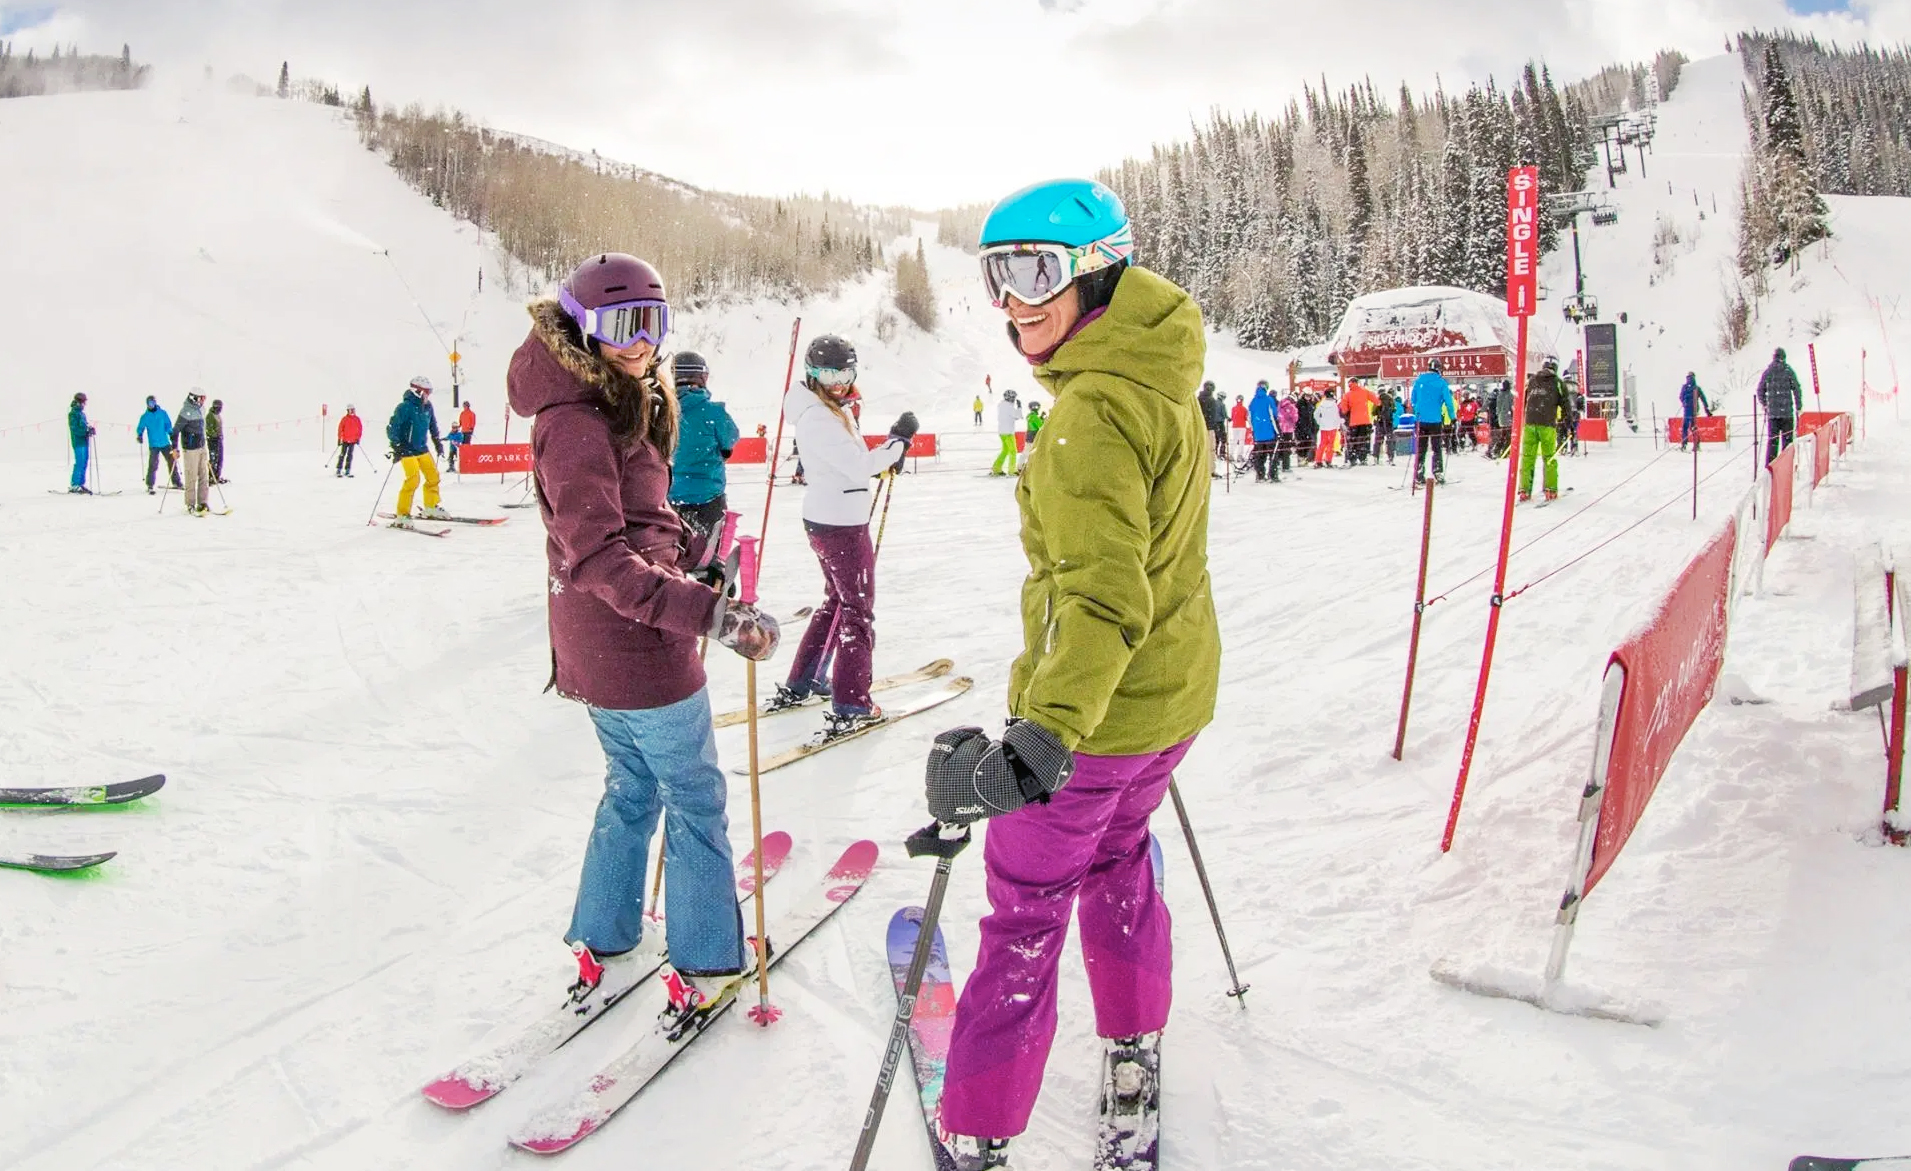 How Hard is it to Learn to Ski as an Adult?